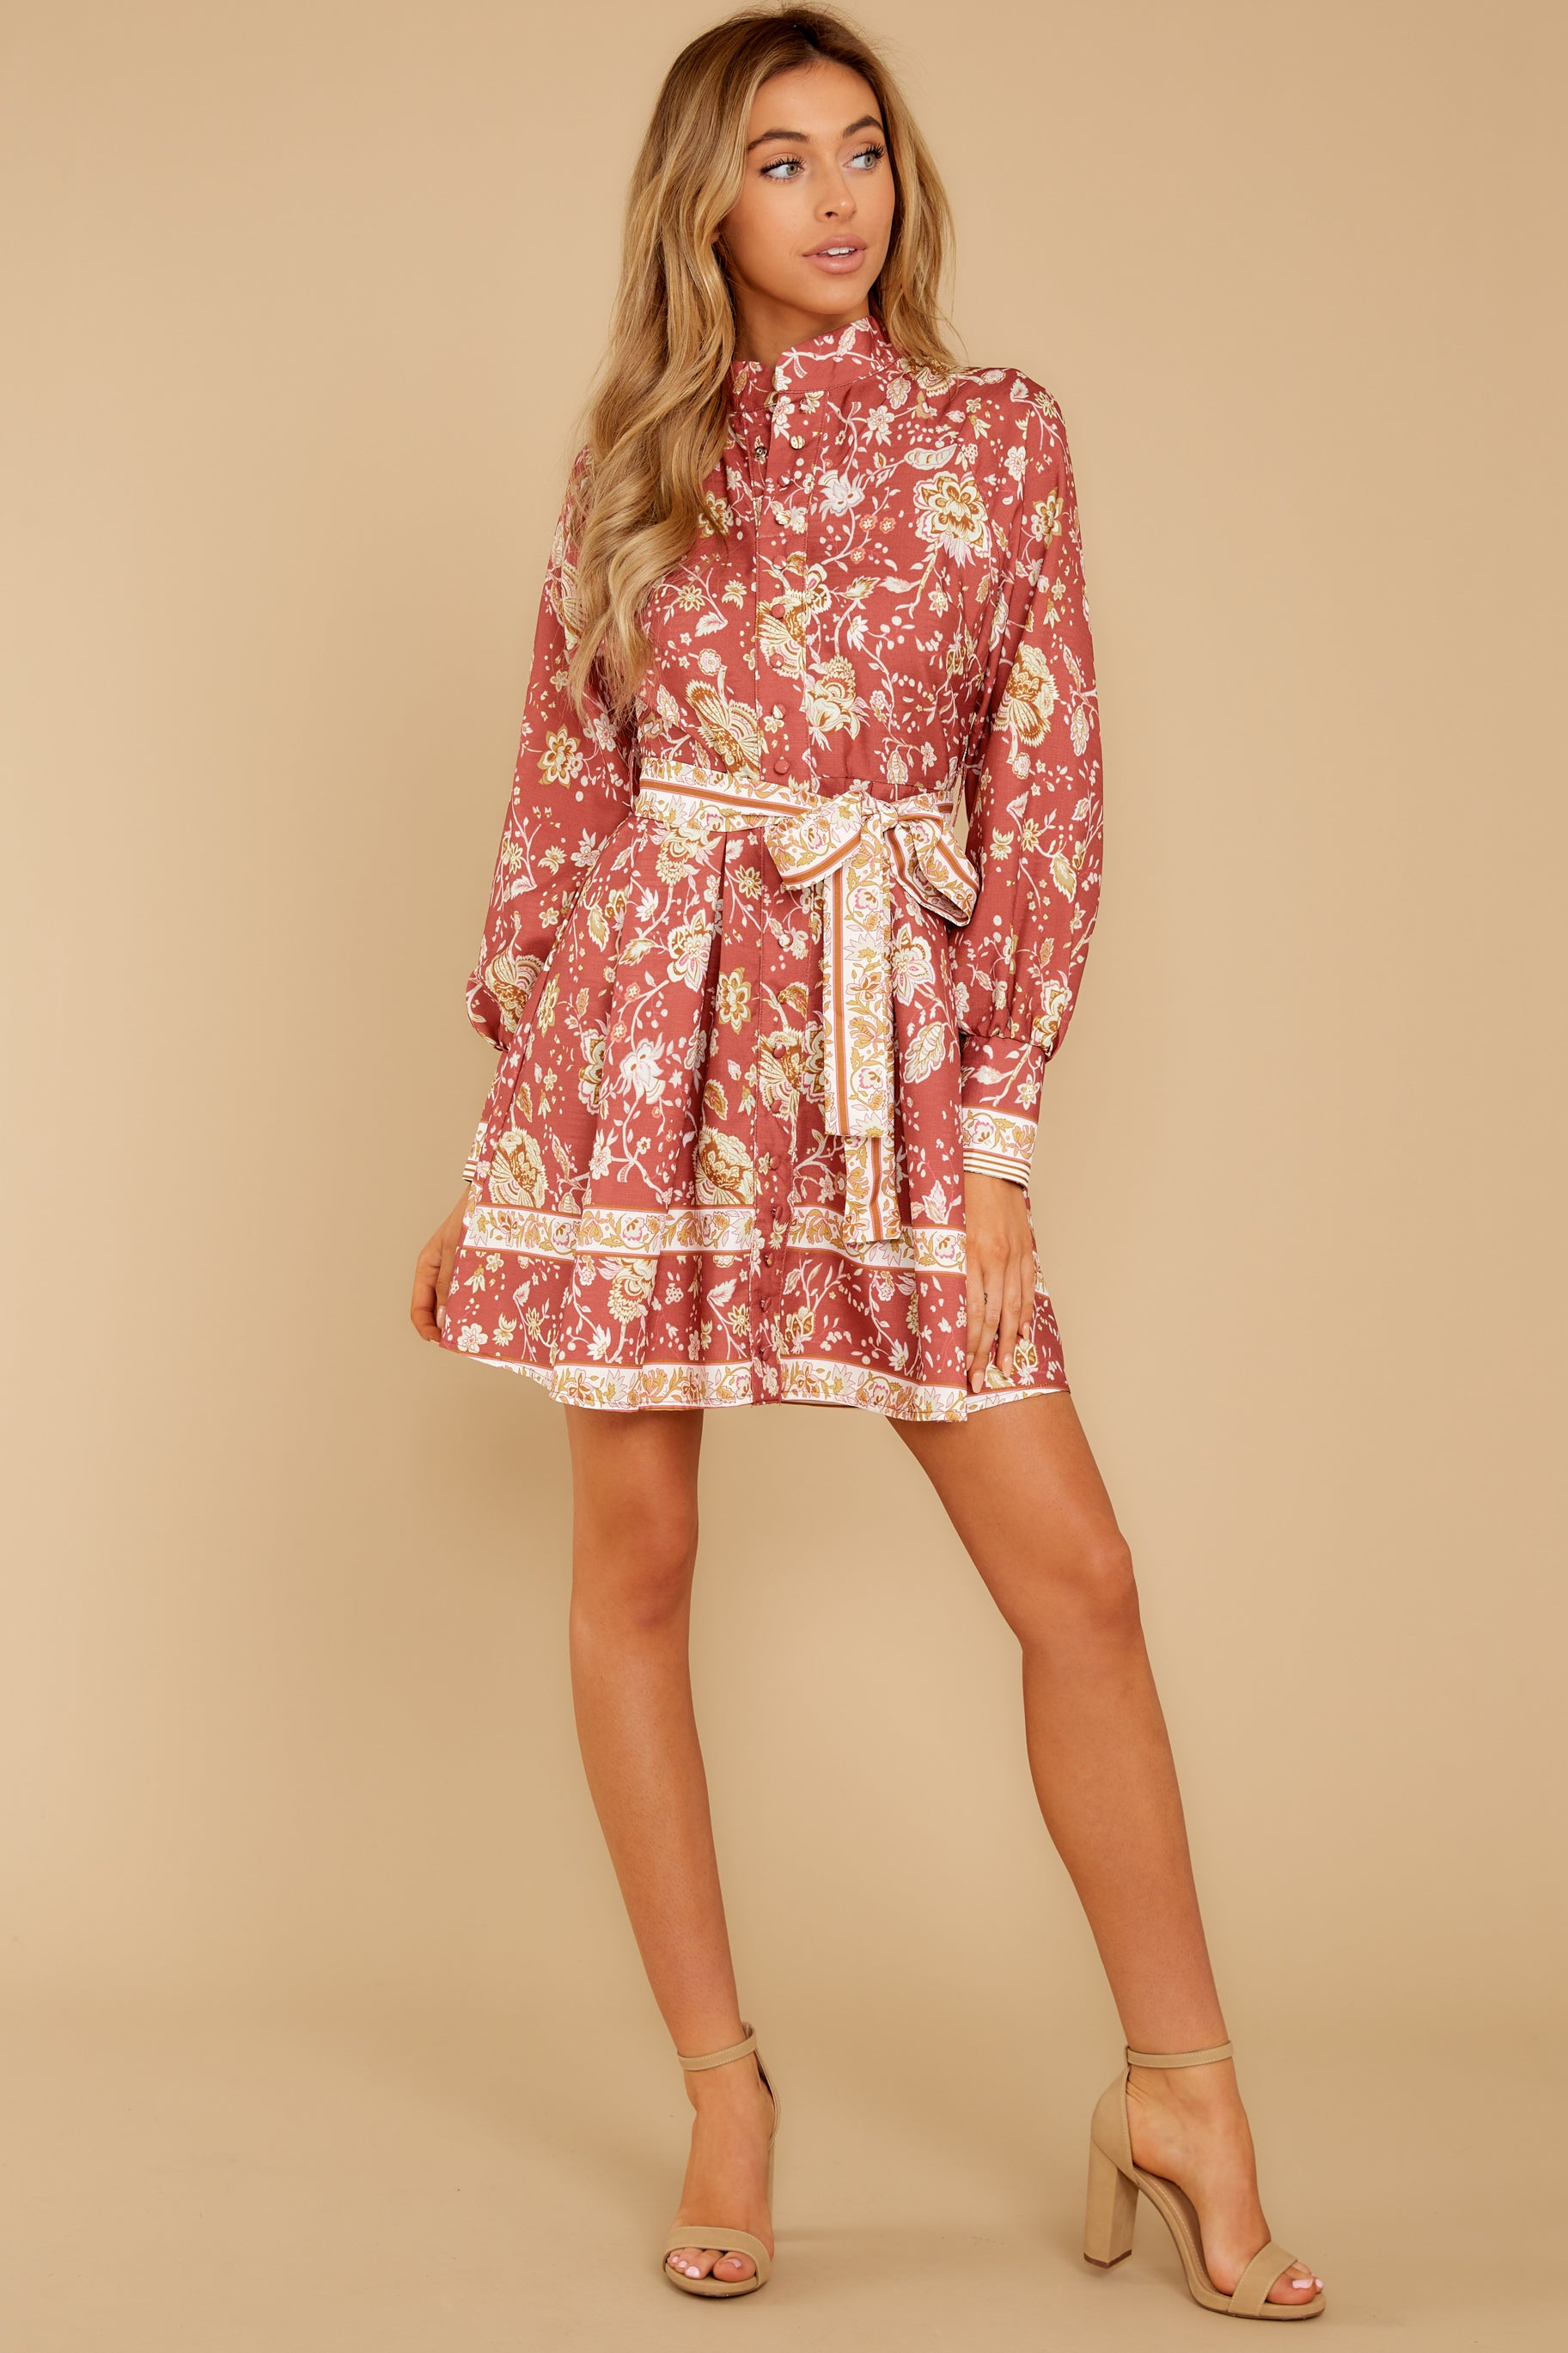 5 Certain Romance Rose Pink Floral Print Dress at reddressboutique.com